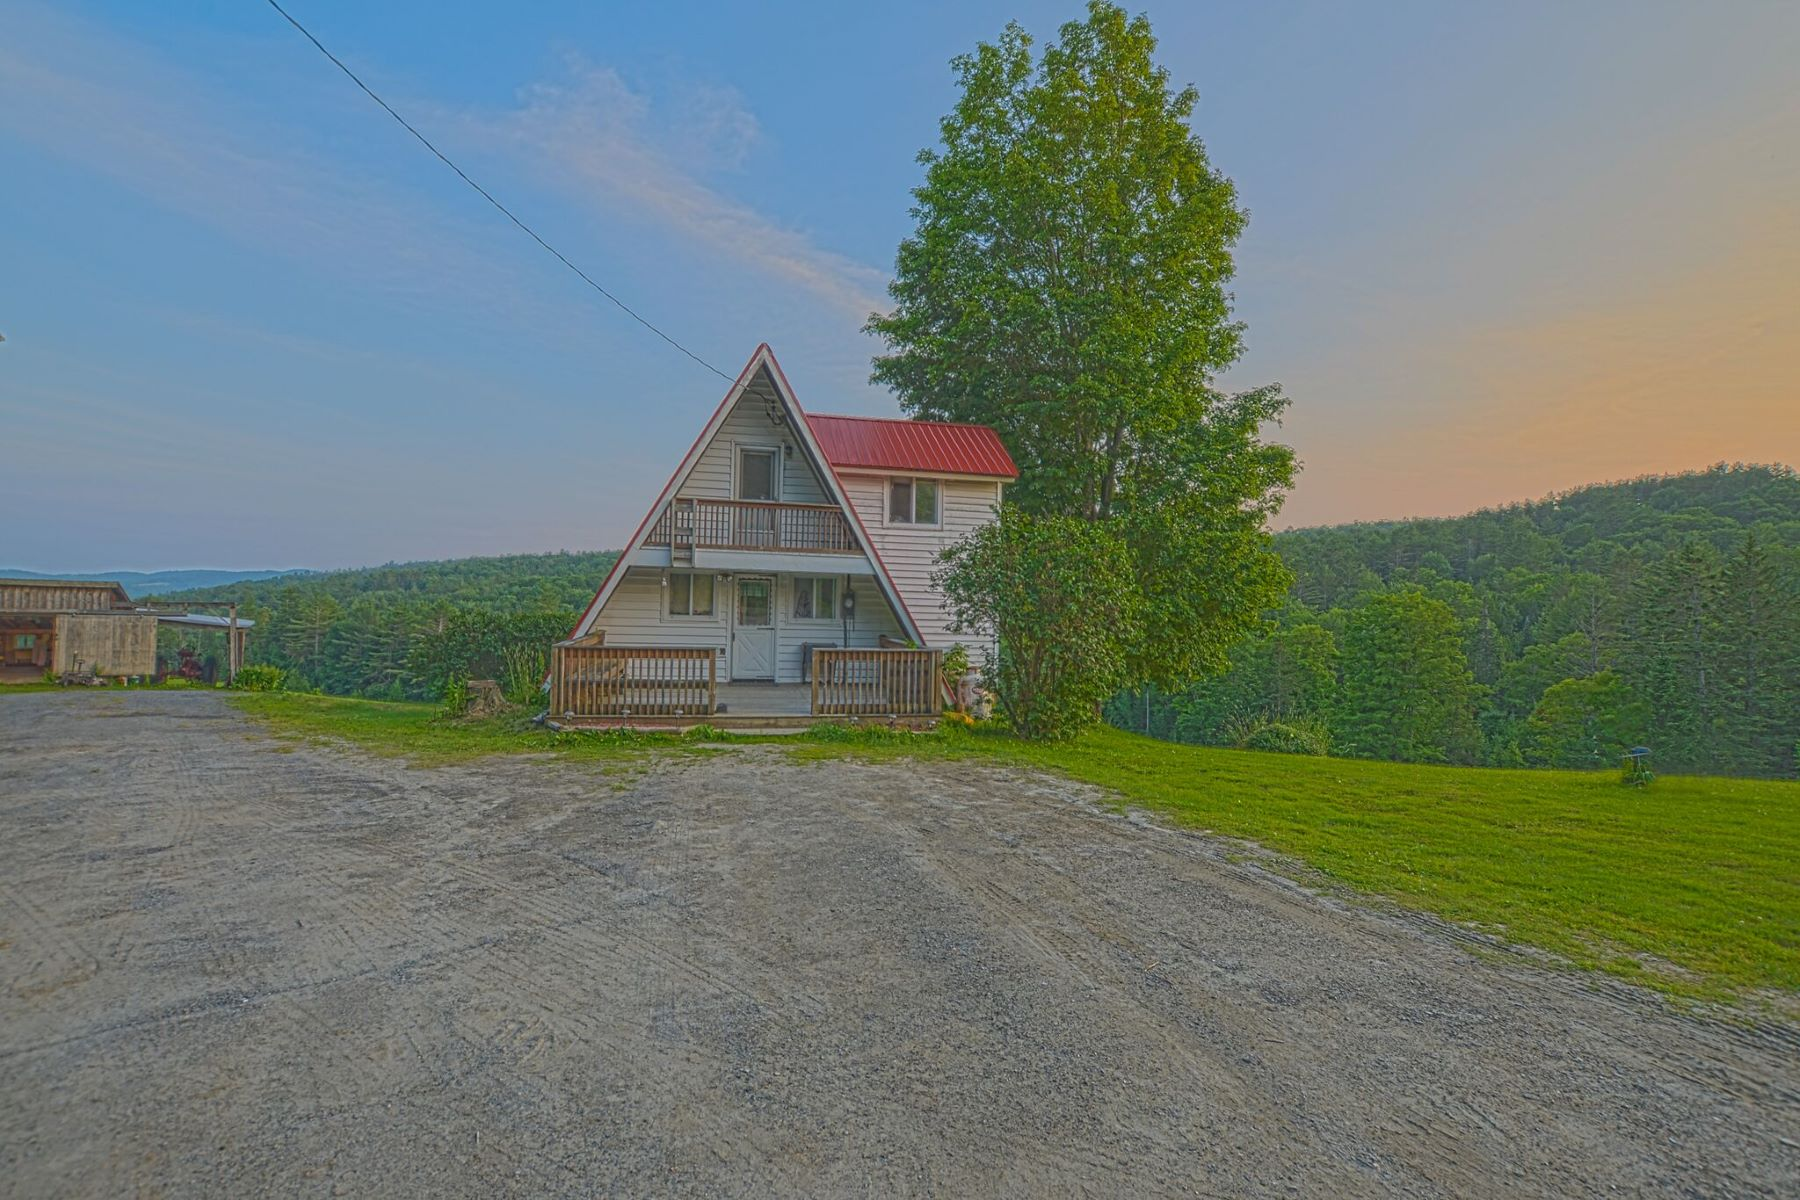 Single Family Homes for Sale at Three Bedroom A-Frame in Corinth 1483 White Rd Corinth, Vermont 05039 United States